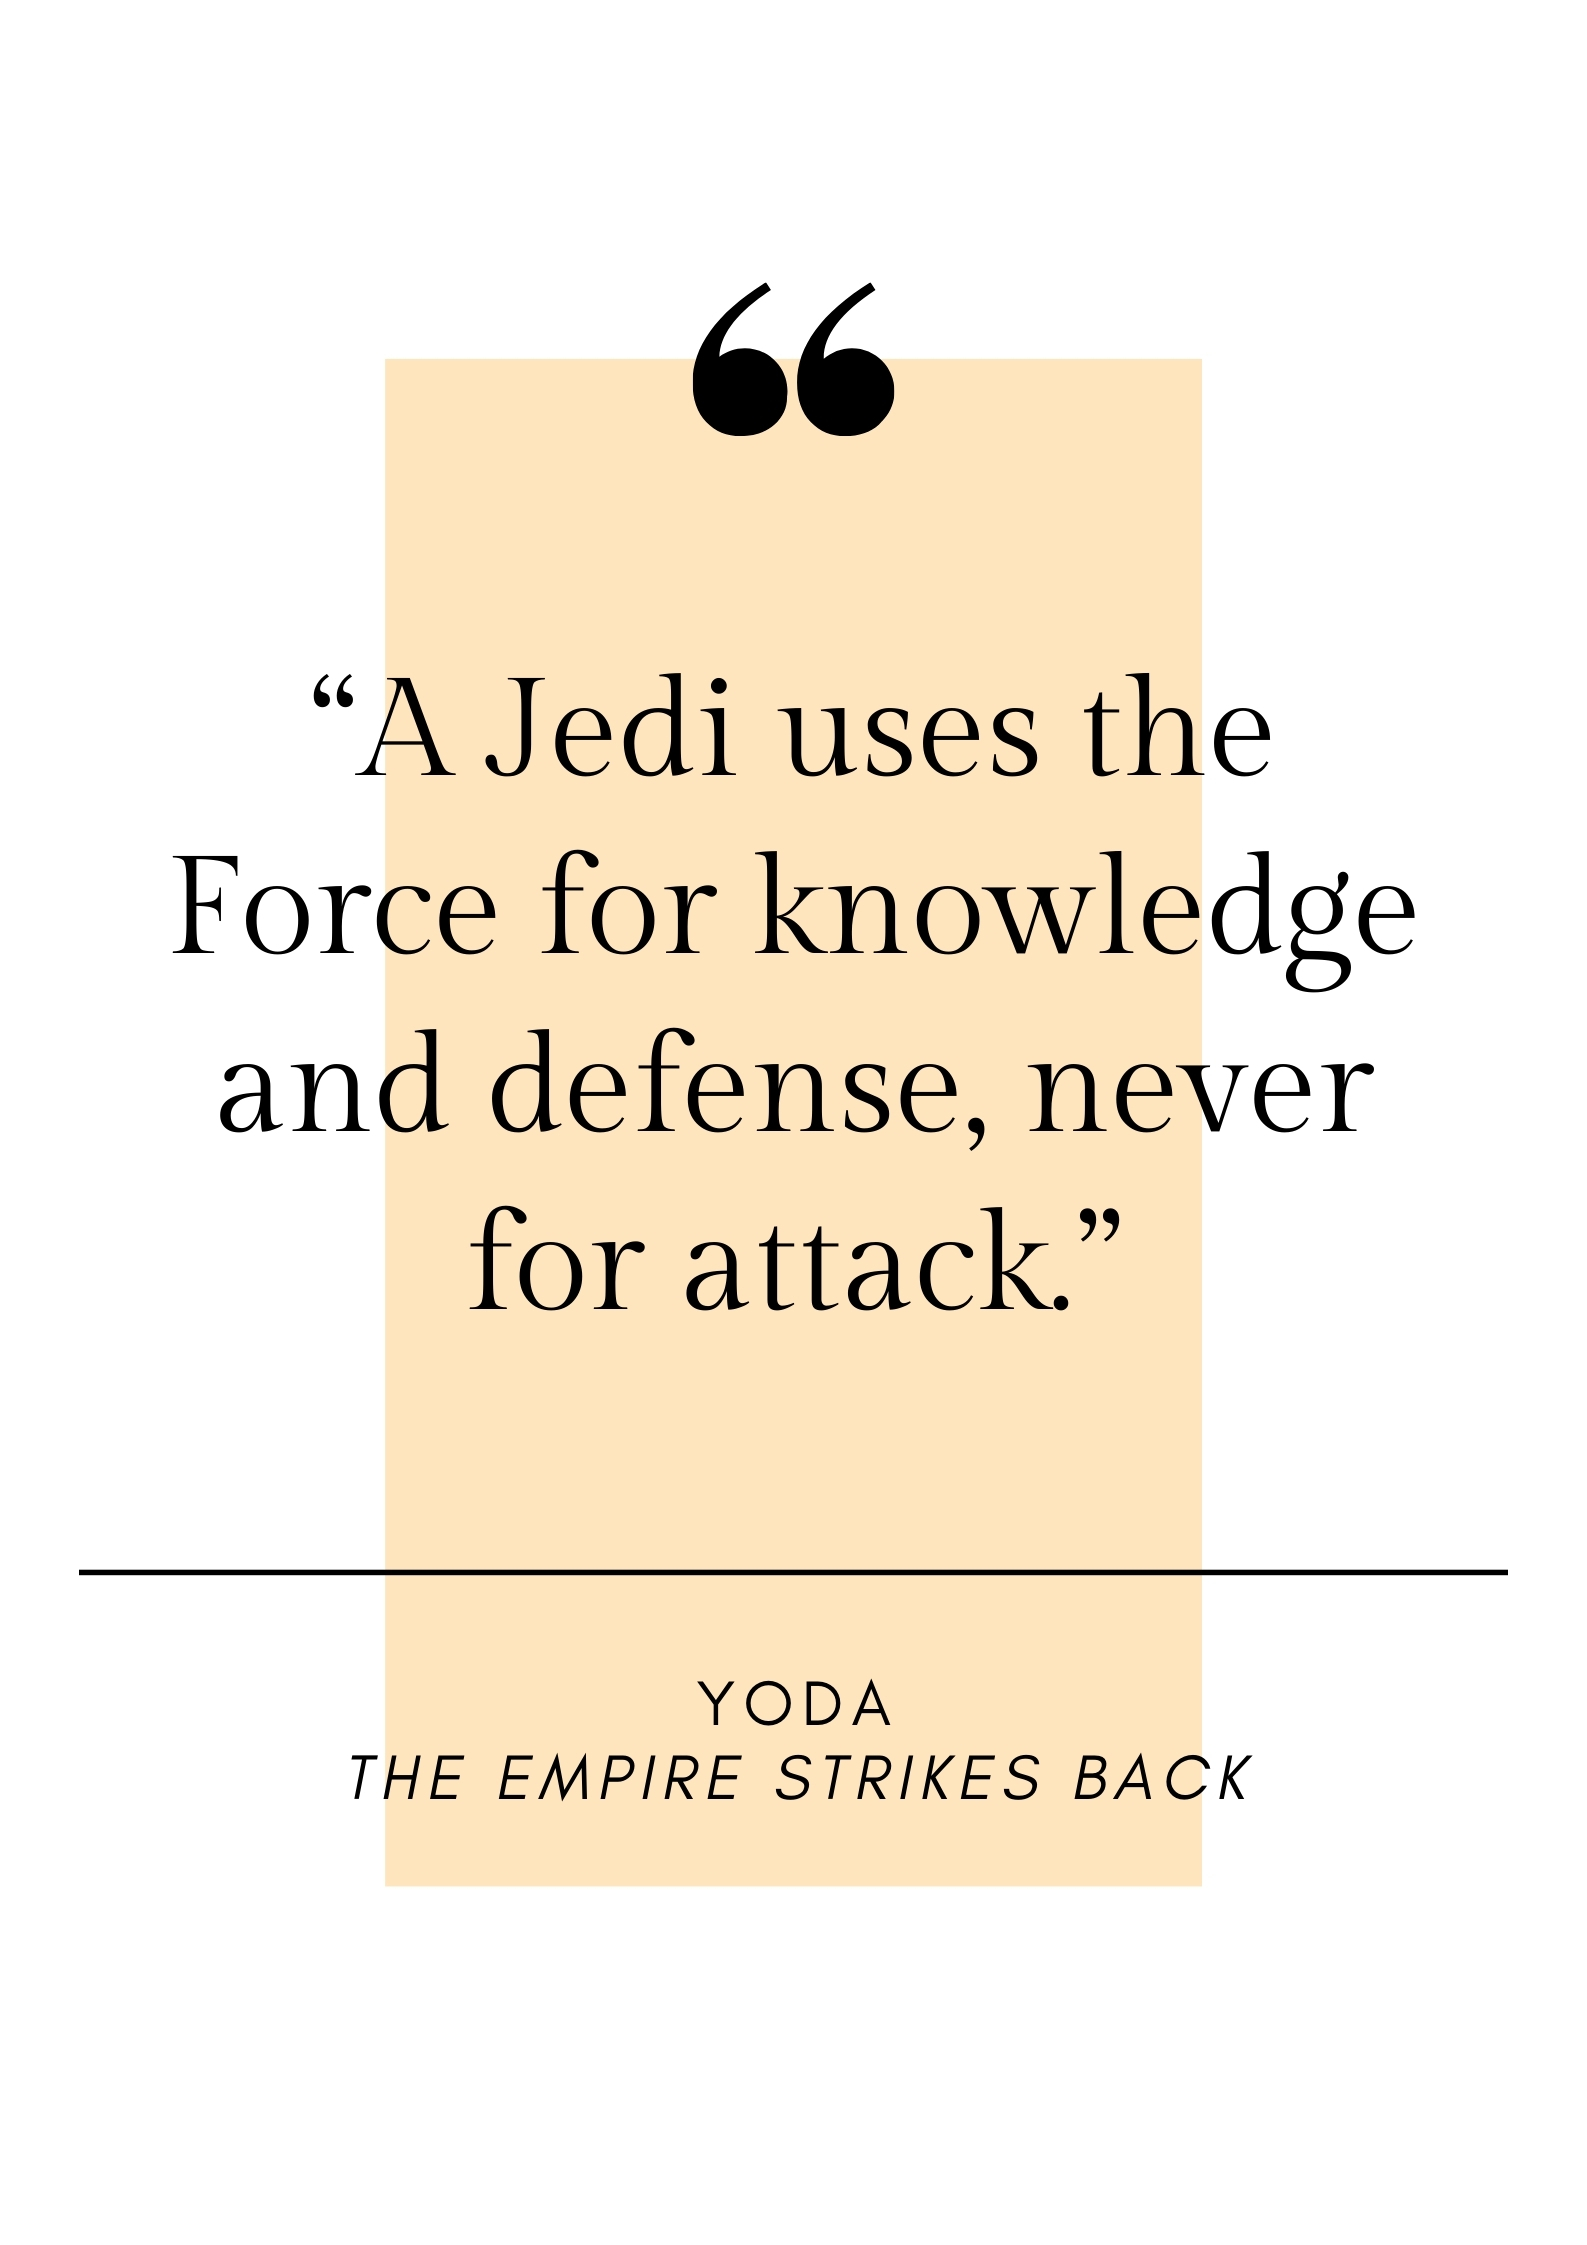 yoda quote from star wars